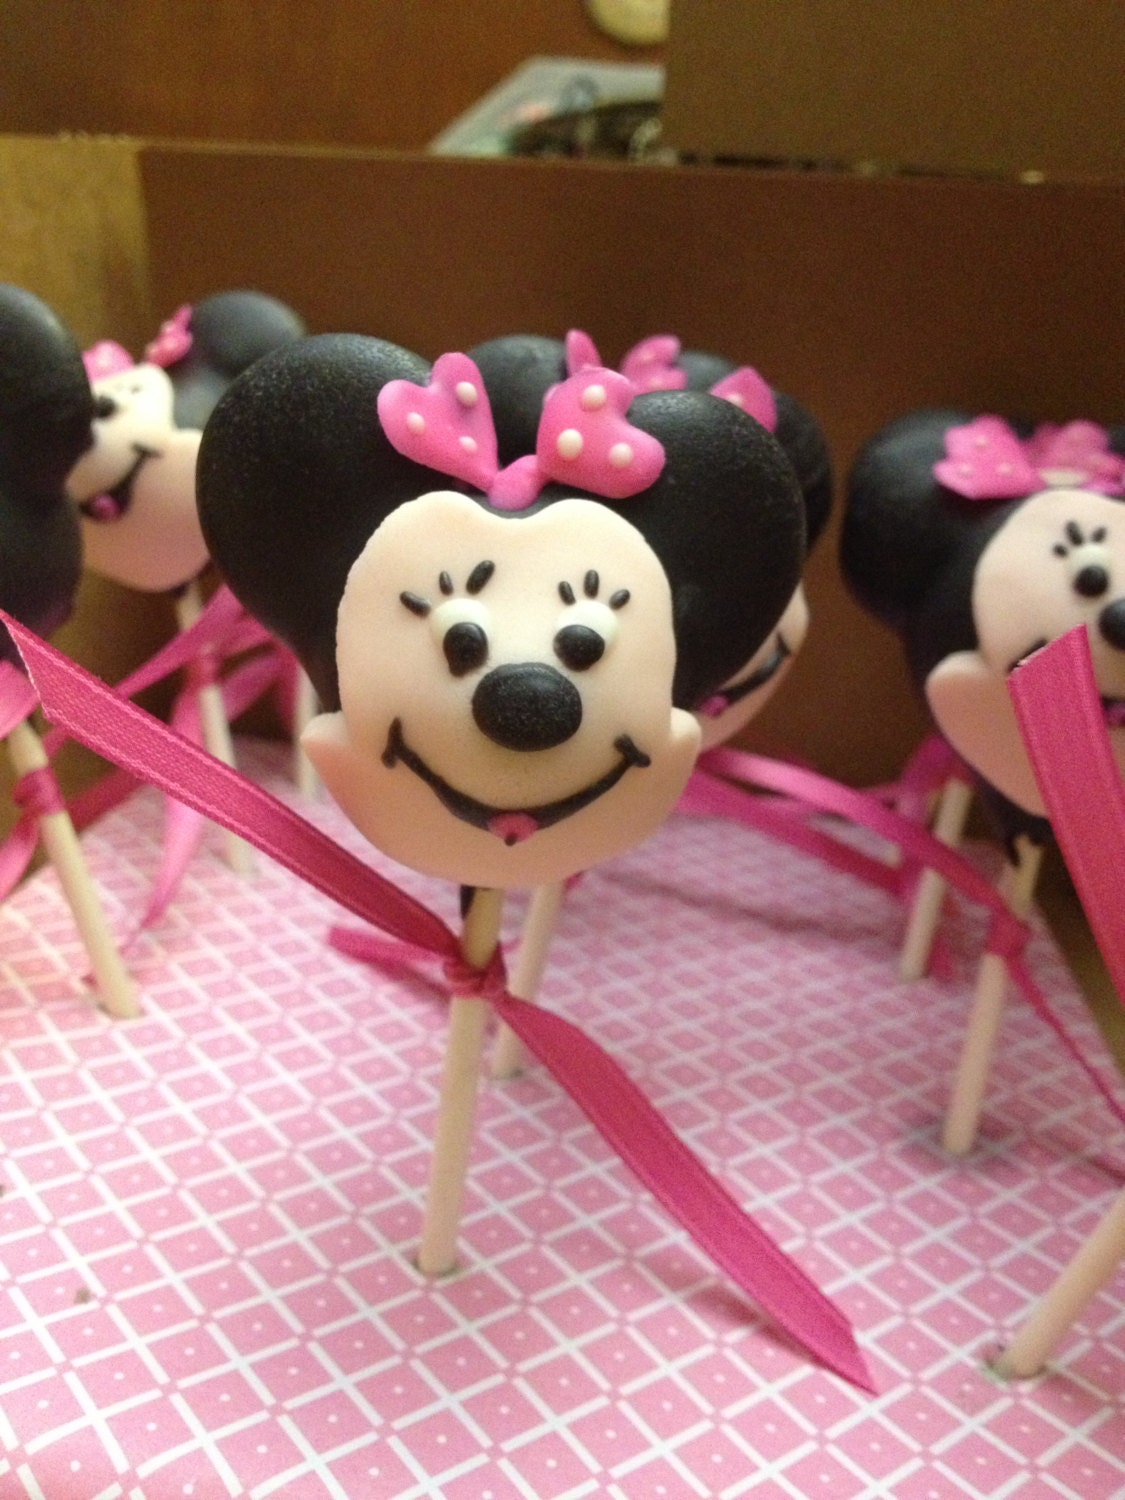 Mickey & Minnie Mouse cake pops | Etsy